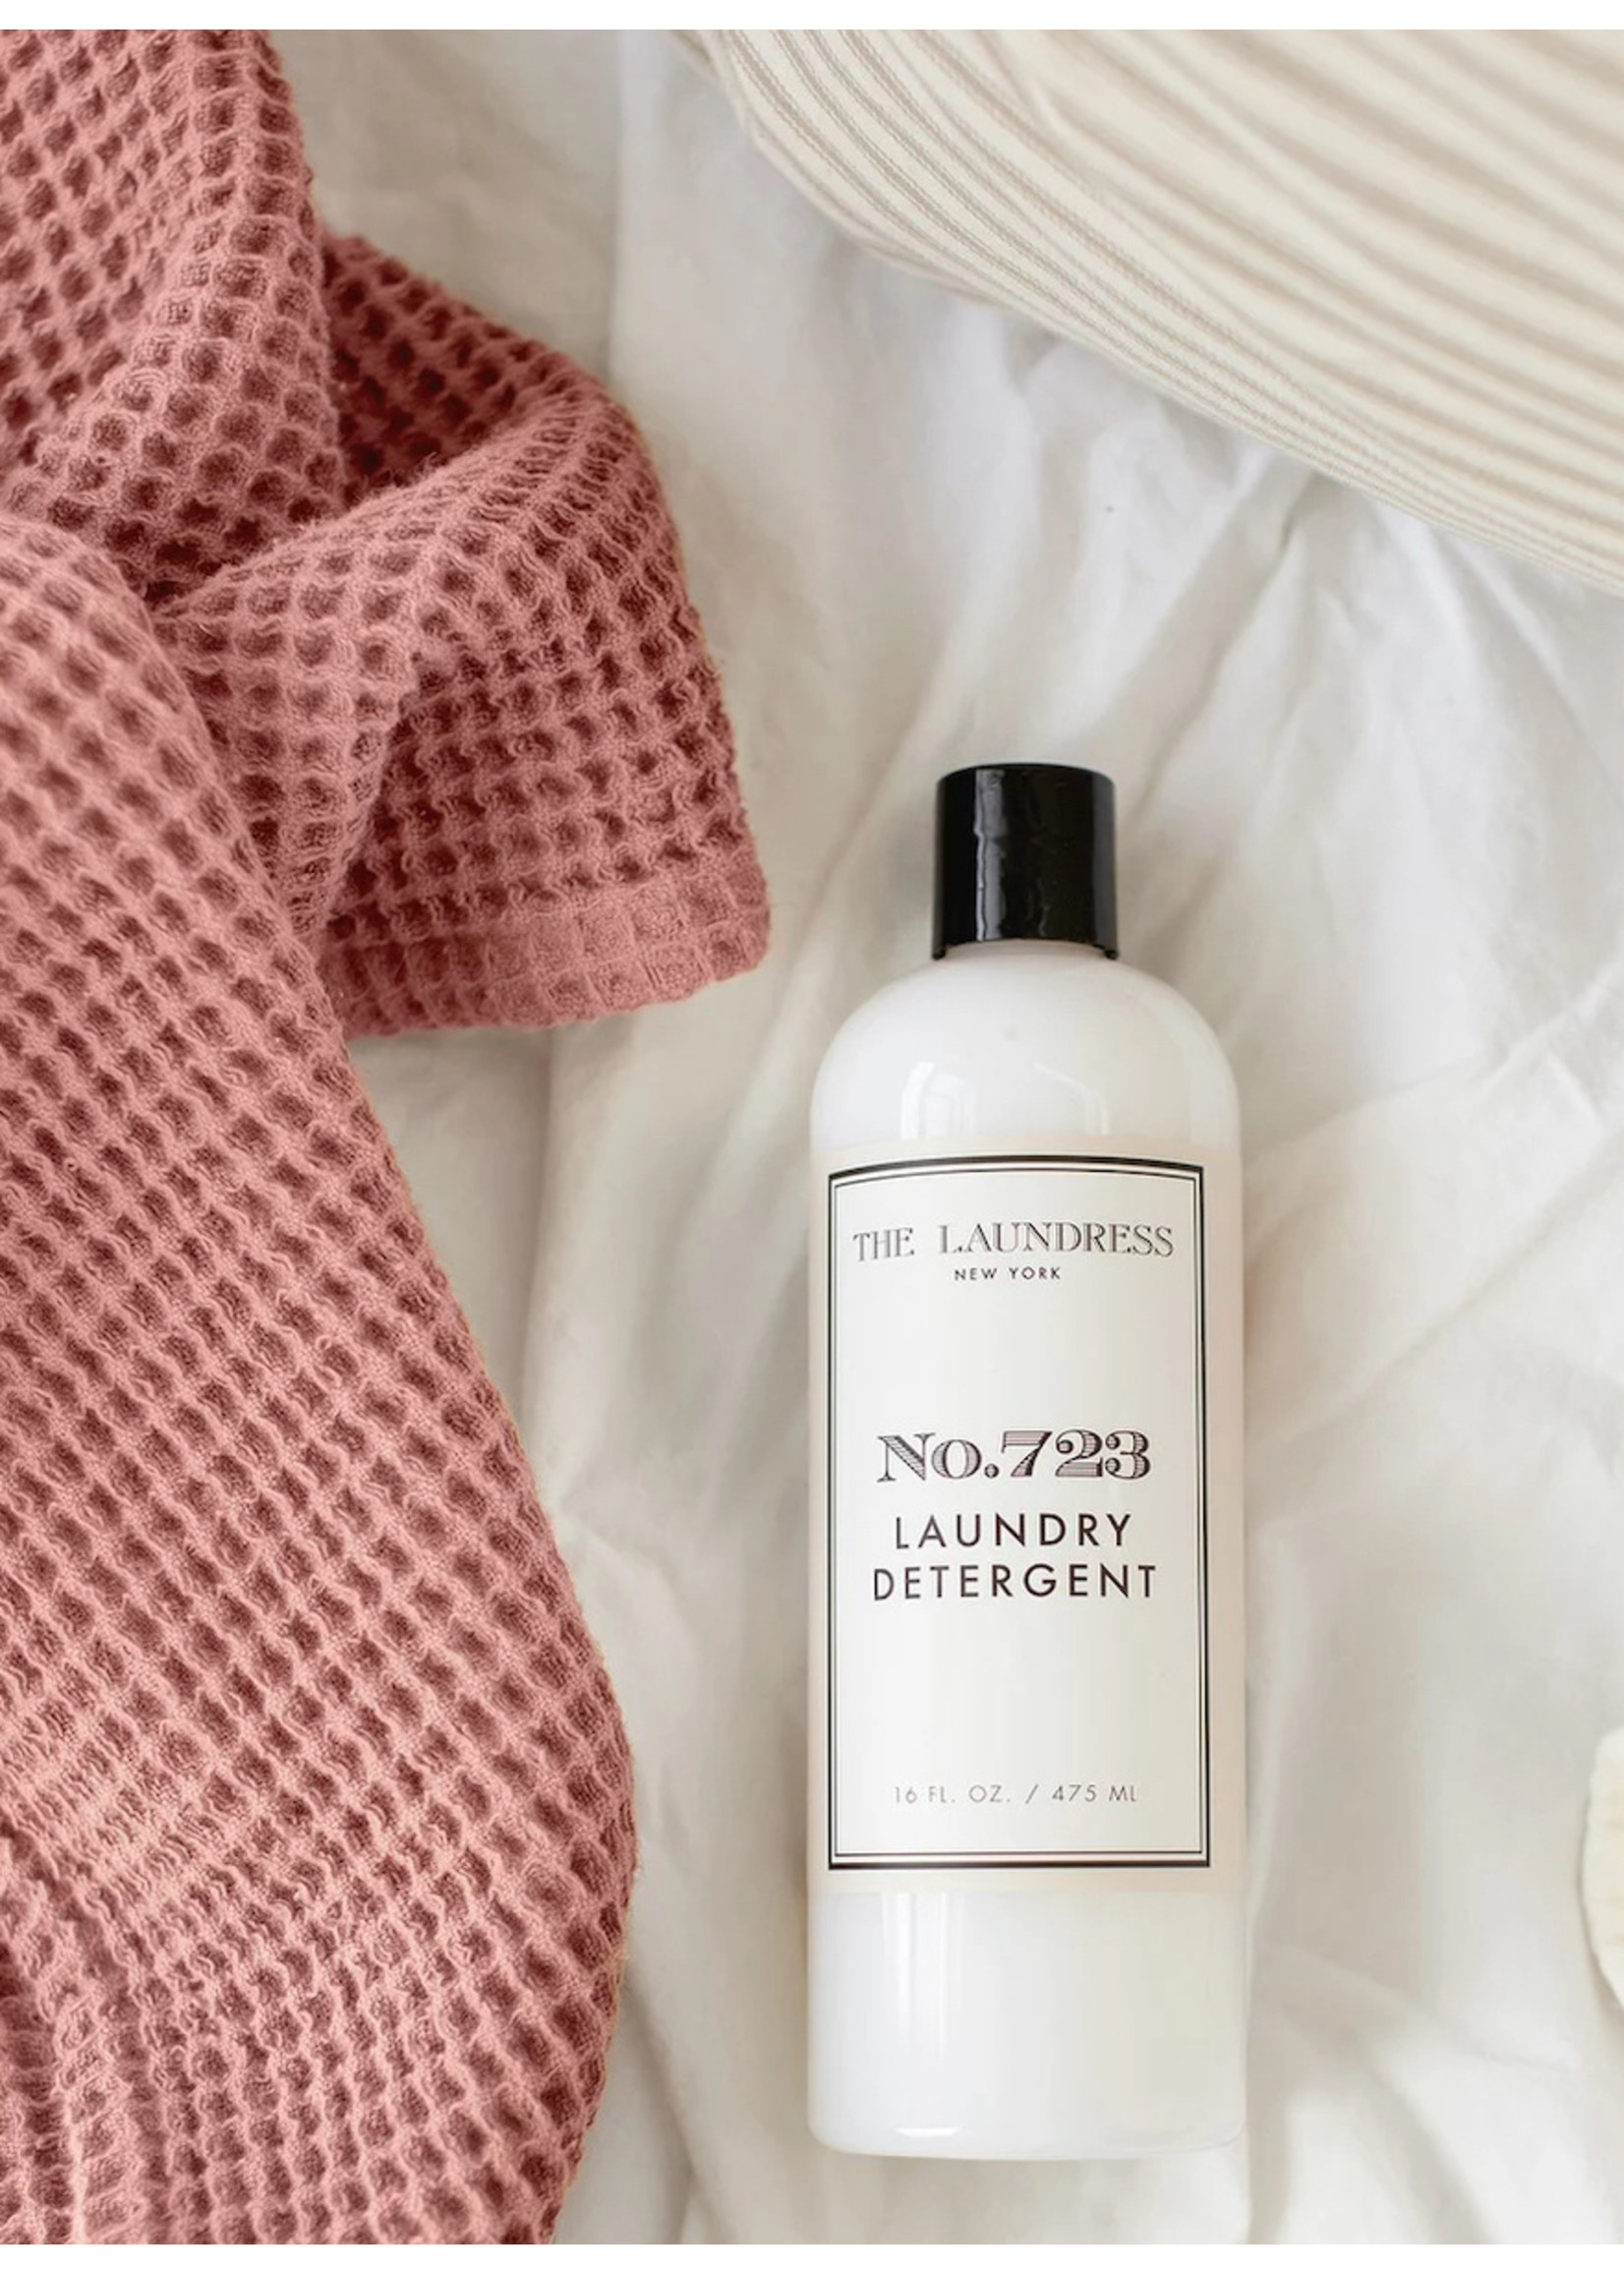 The Laundress New York No. 723 Laundry Detergent